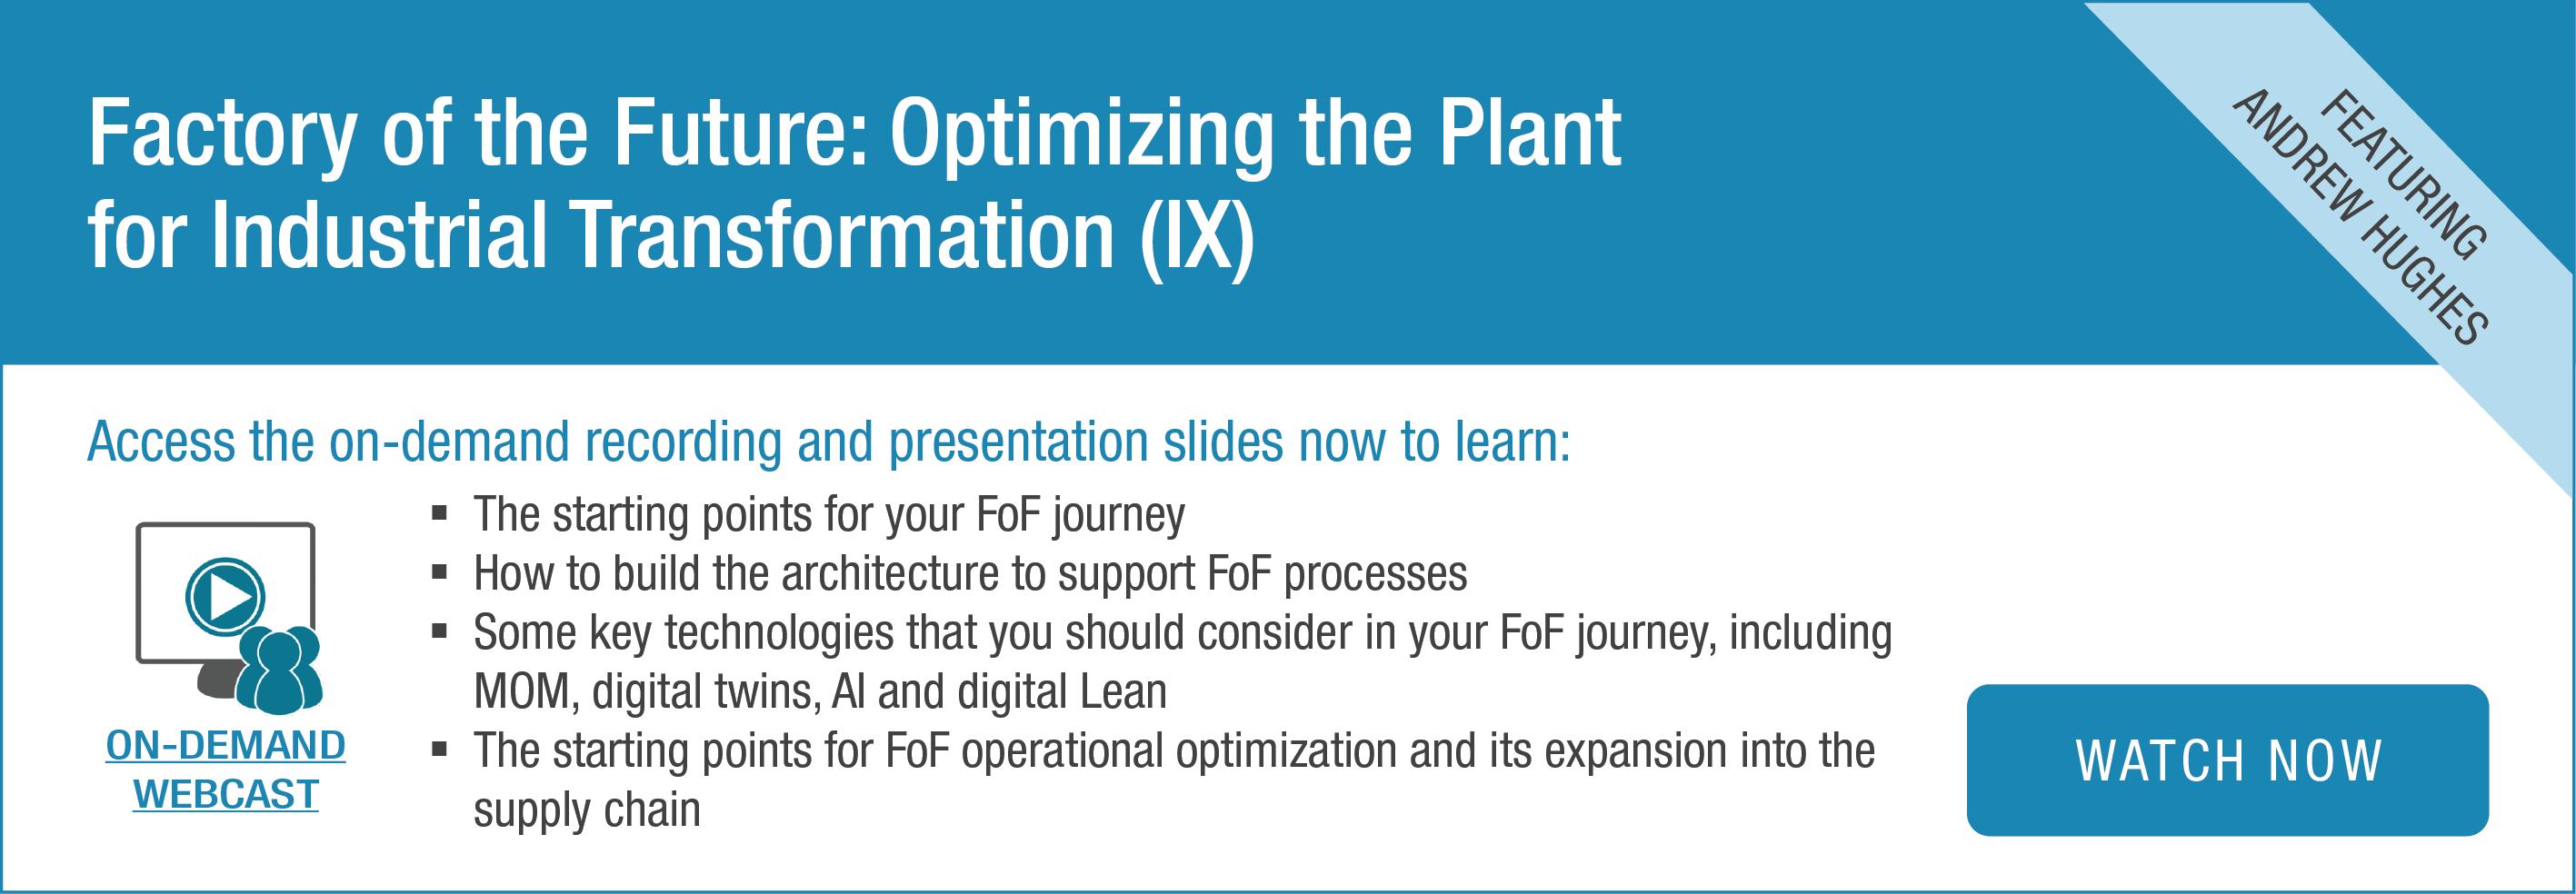 Factory of the Future: Optimizing the Plant for Industrial Transformation (IX) | On-Demand Webcast